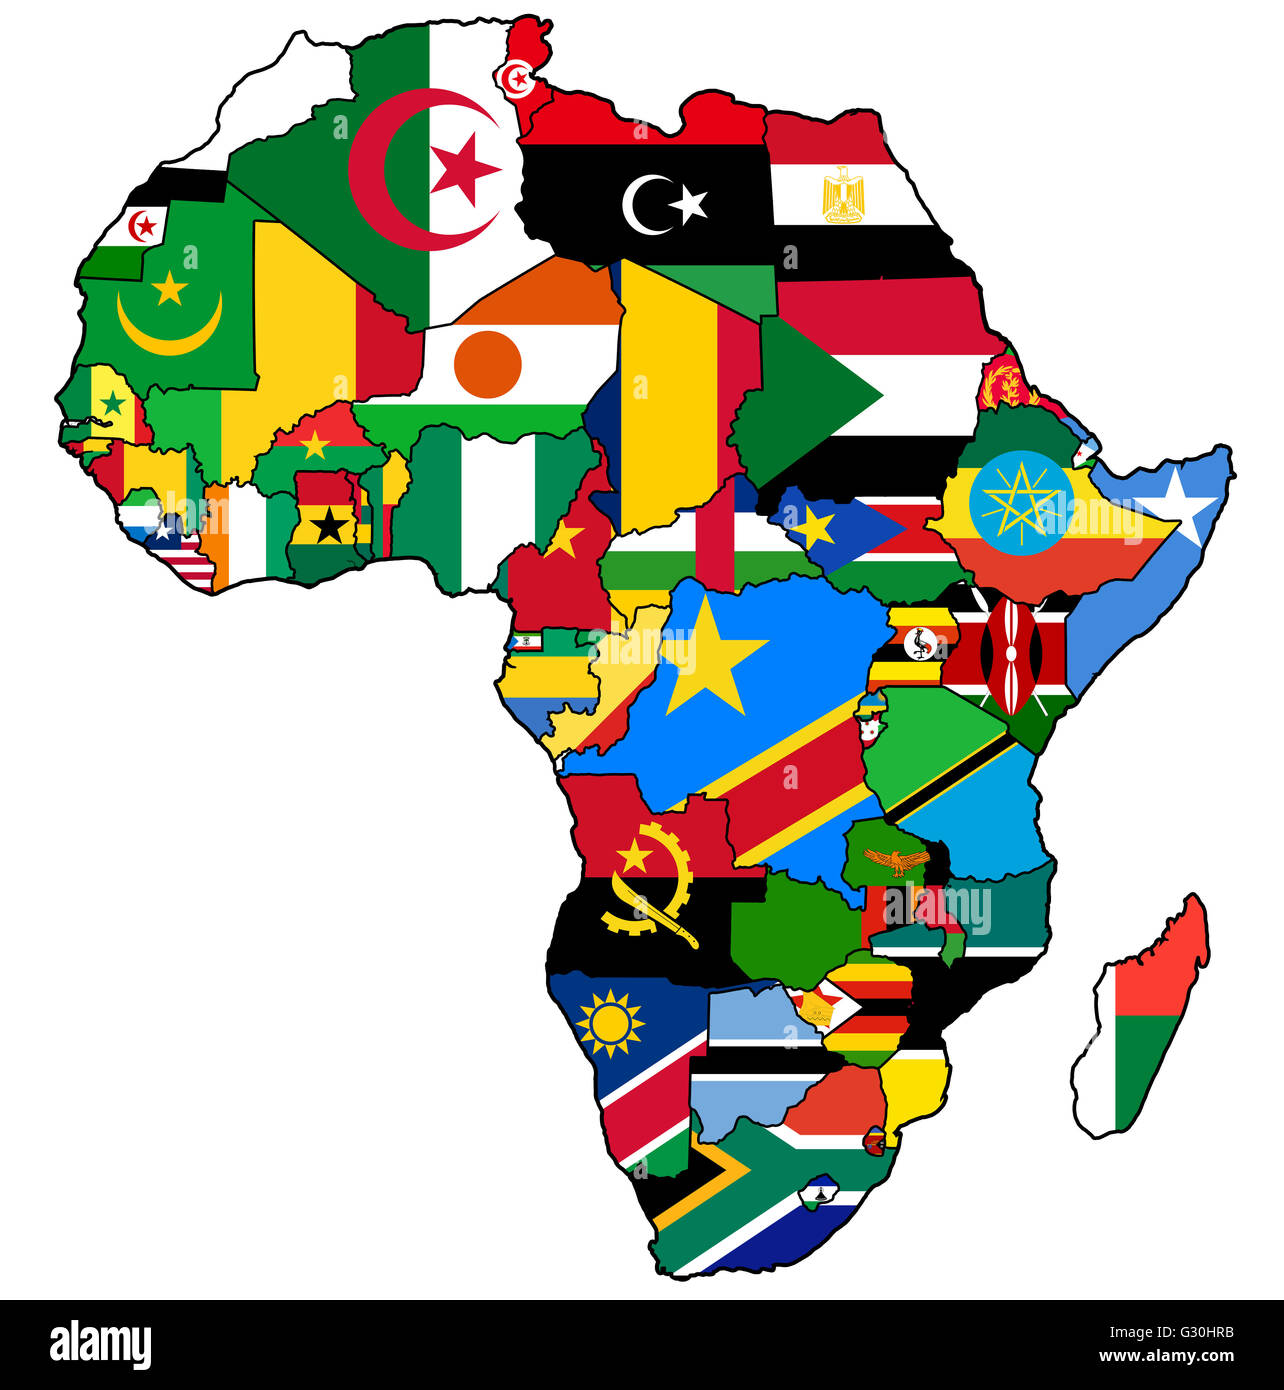 African Union Map.African Union On Actual Vintage Political Map Of Africa With Flags